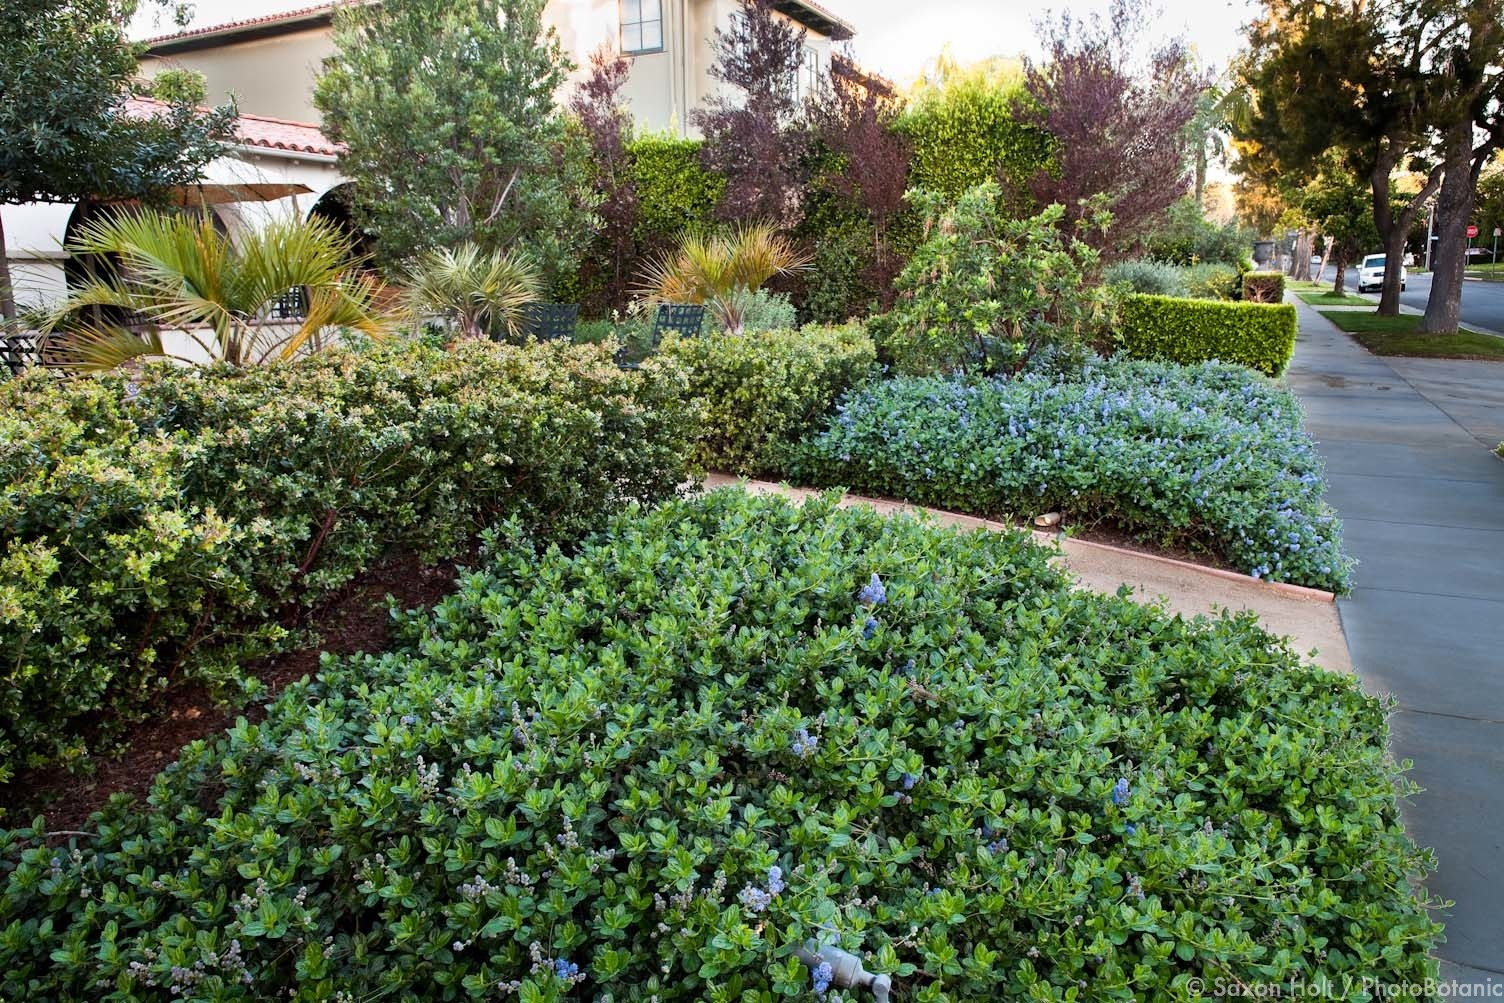 Low grown forms of manzanita and Ceanothus can be pruned to neat ground covers.